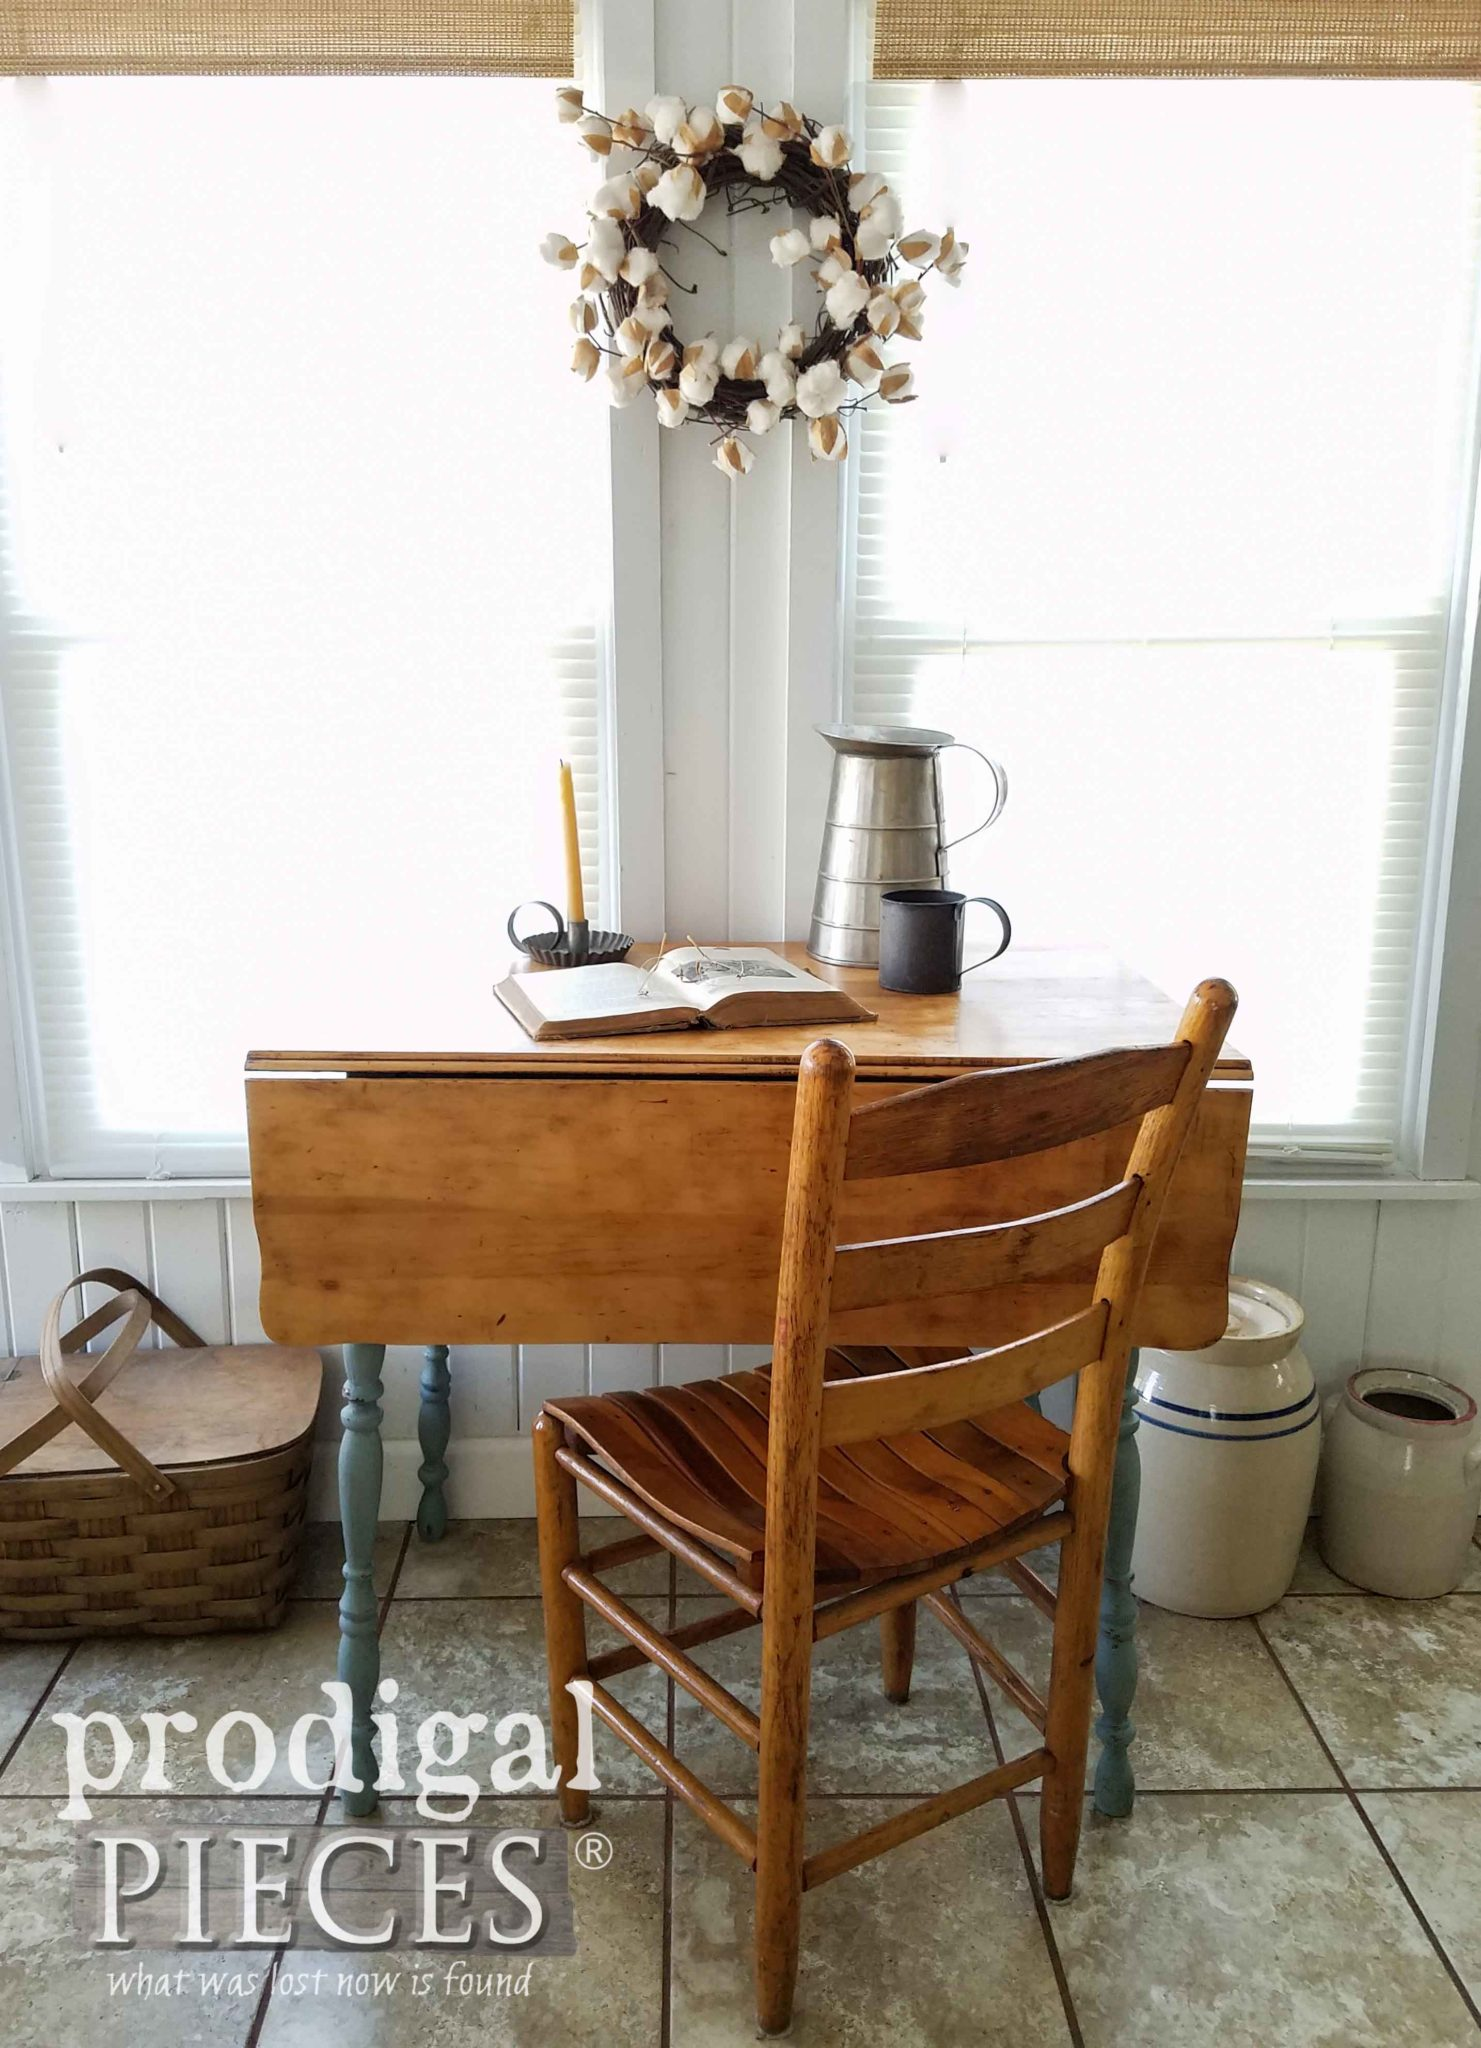 Farmhouse Drop-Leaf Table Used as Desk, Console Table, Sofa Table, Entry Table and More. By Prodigal Pieces | prodigalpieces.com